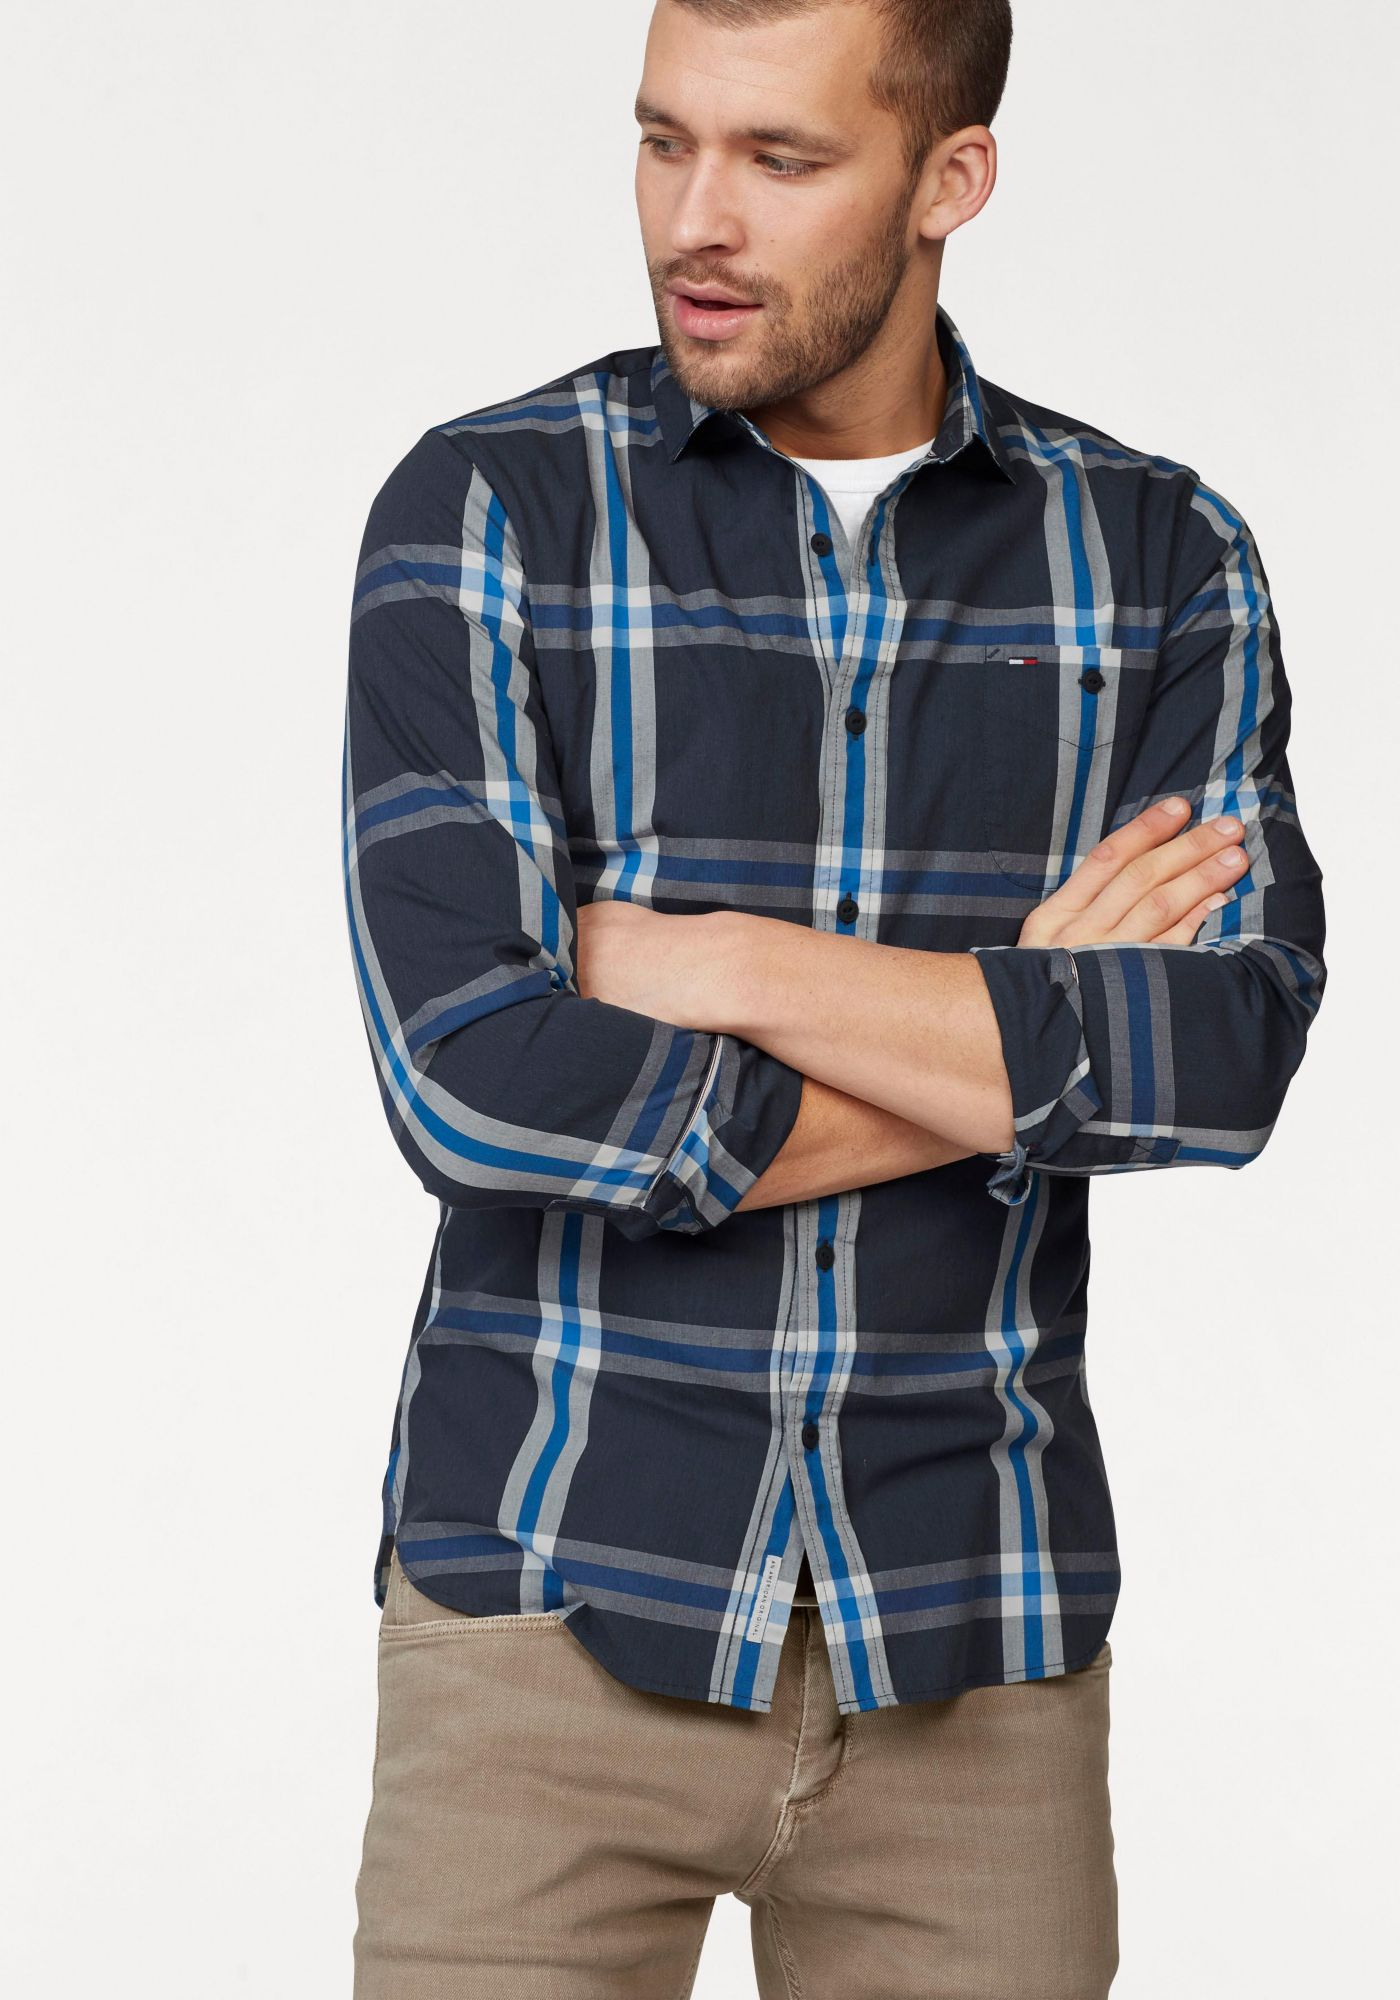 HILFIGER DENIM Hilfiger Denim Karohemd »THDM SL STRETCH CHECK SHIRT L/S 20«